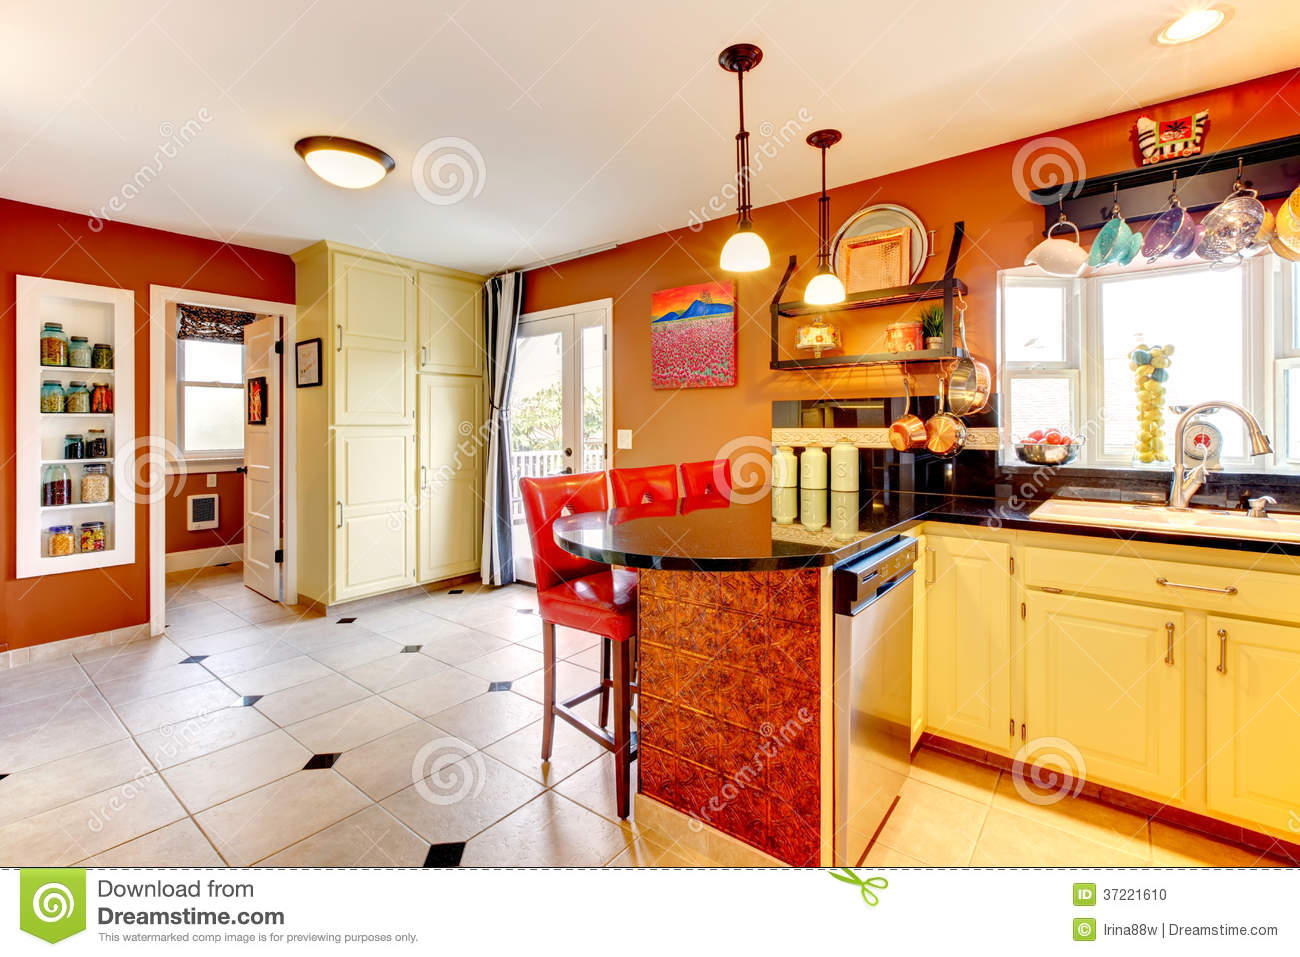 Small Kitchen Room With Yellow Wooden Cabinets Rust Walls And Beige